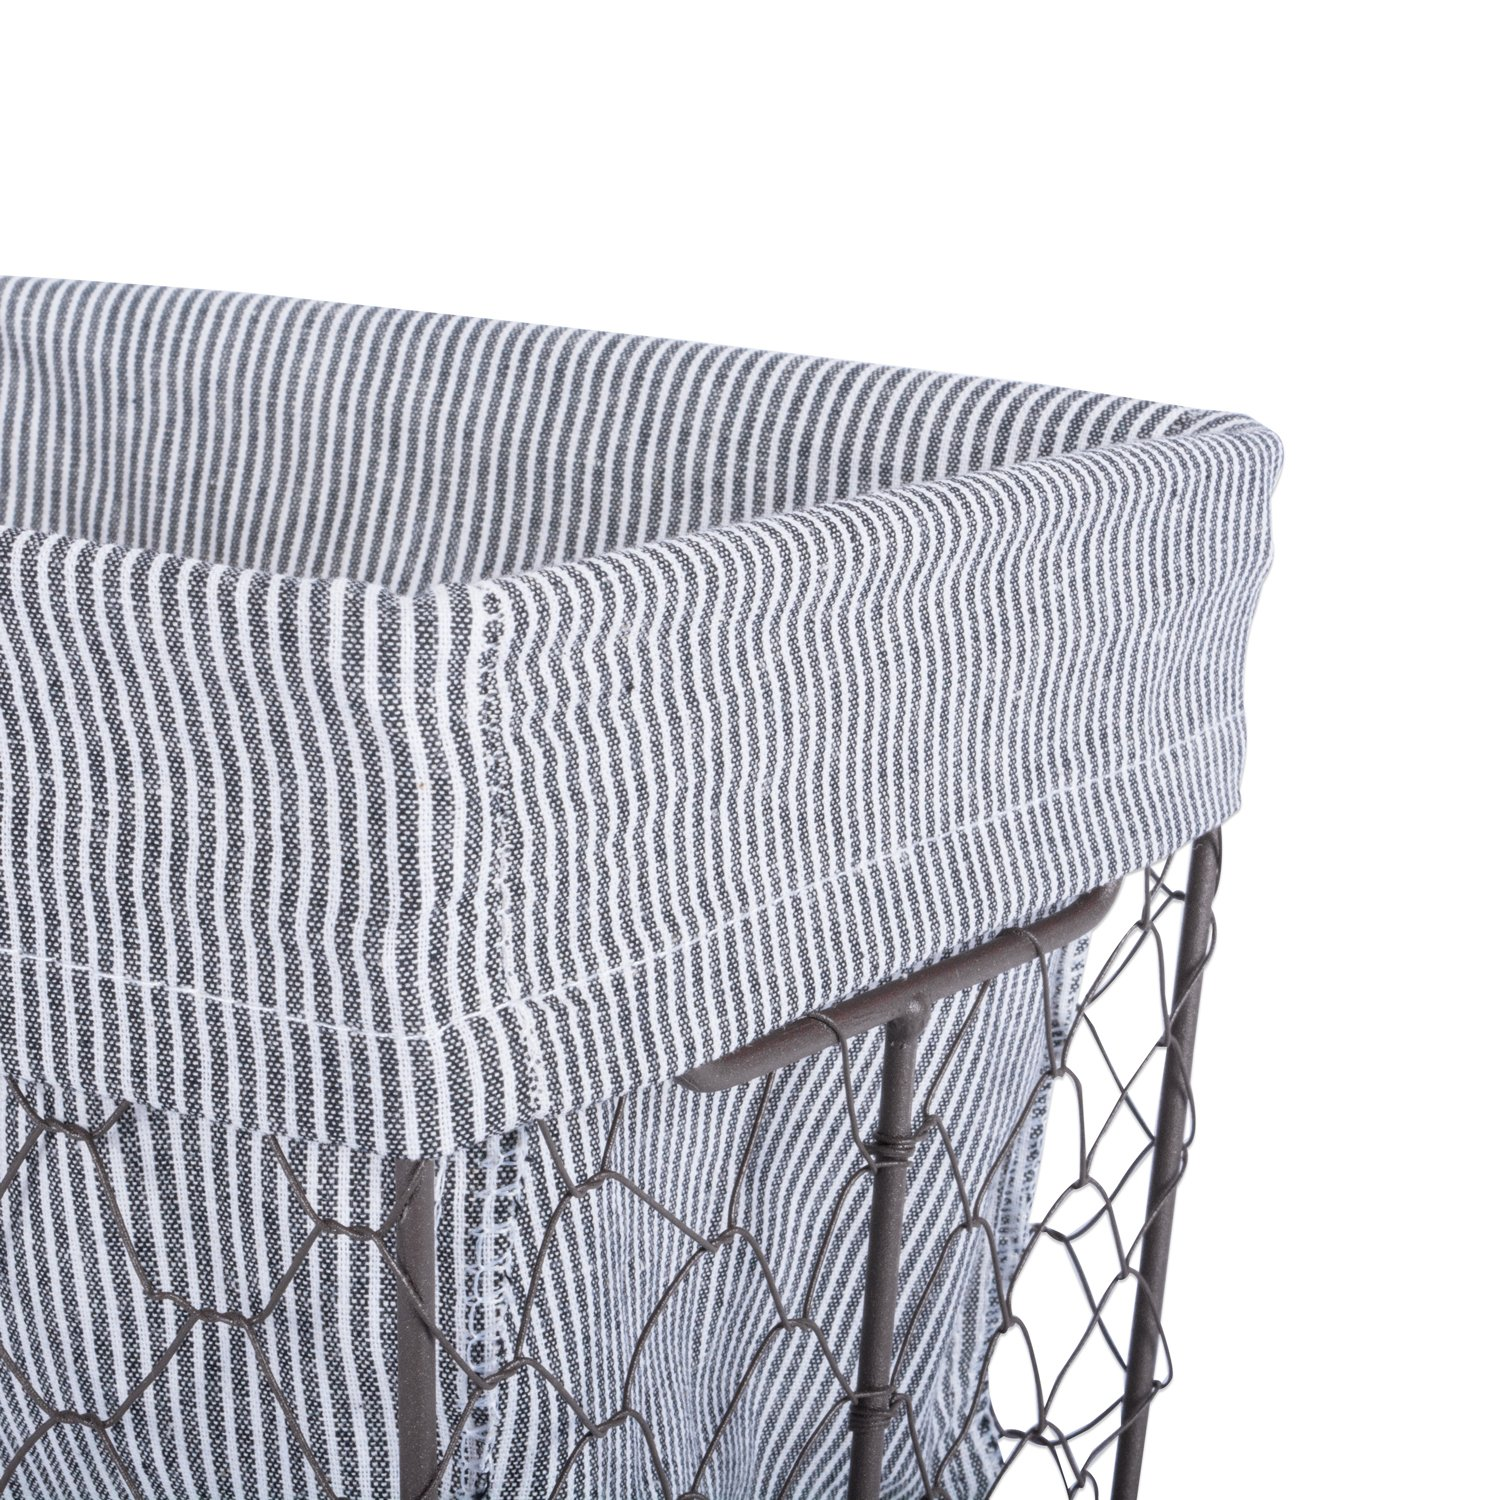 DII COMINHKPR137416 Vintage Chicken Wire Baskets for Storage Removable Fabric Liner Set of 3 Stripes